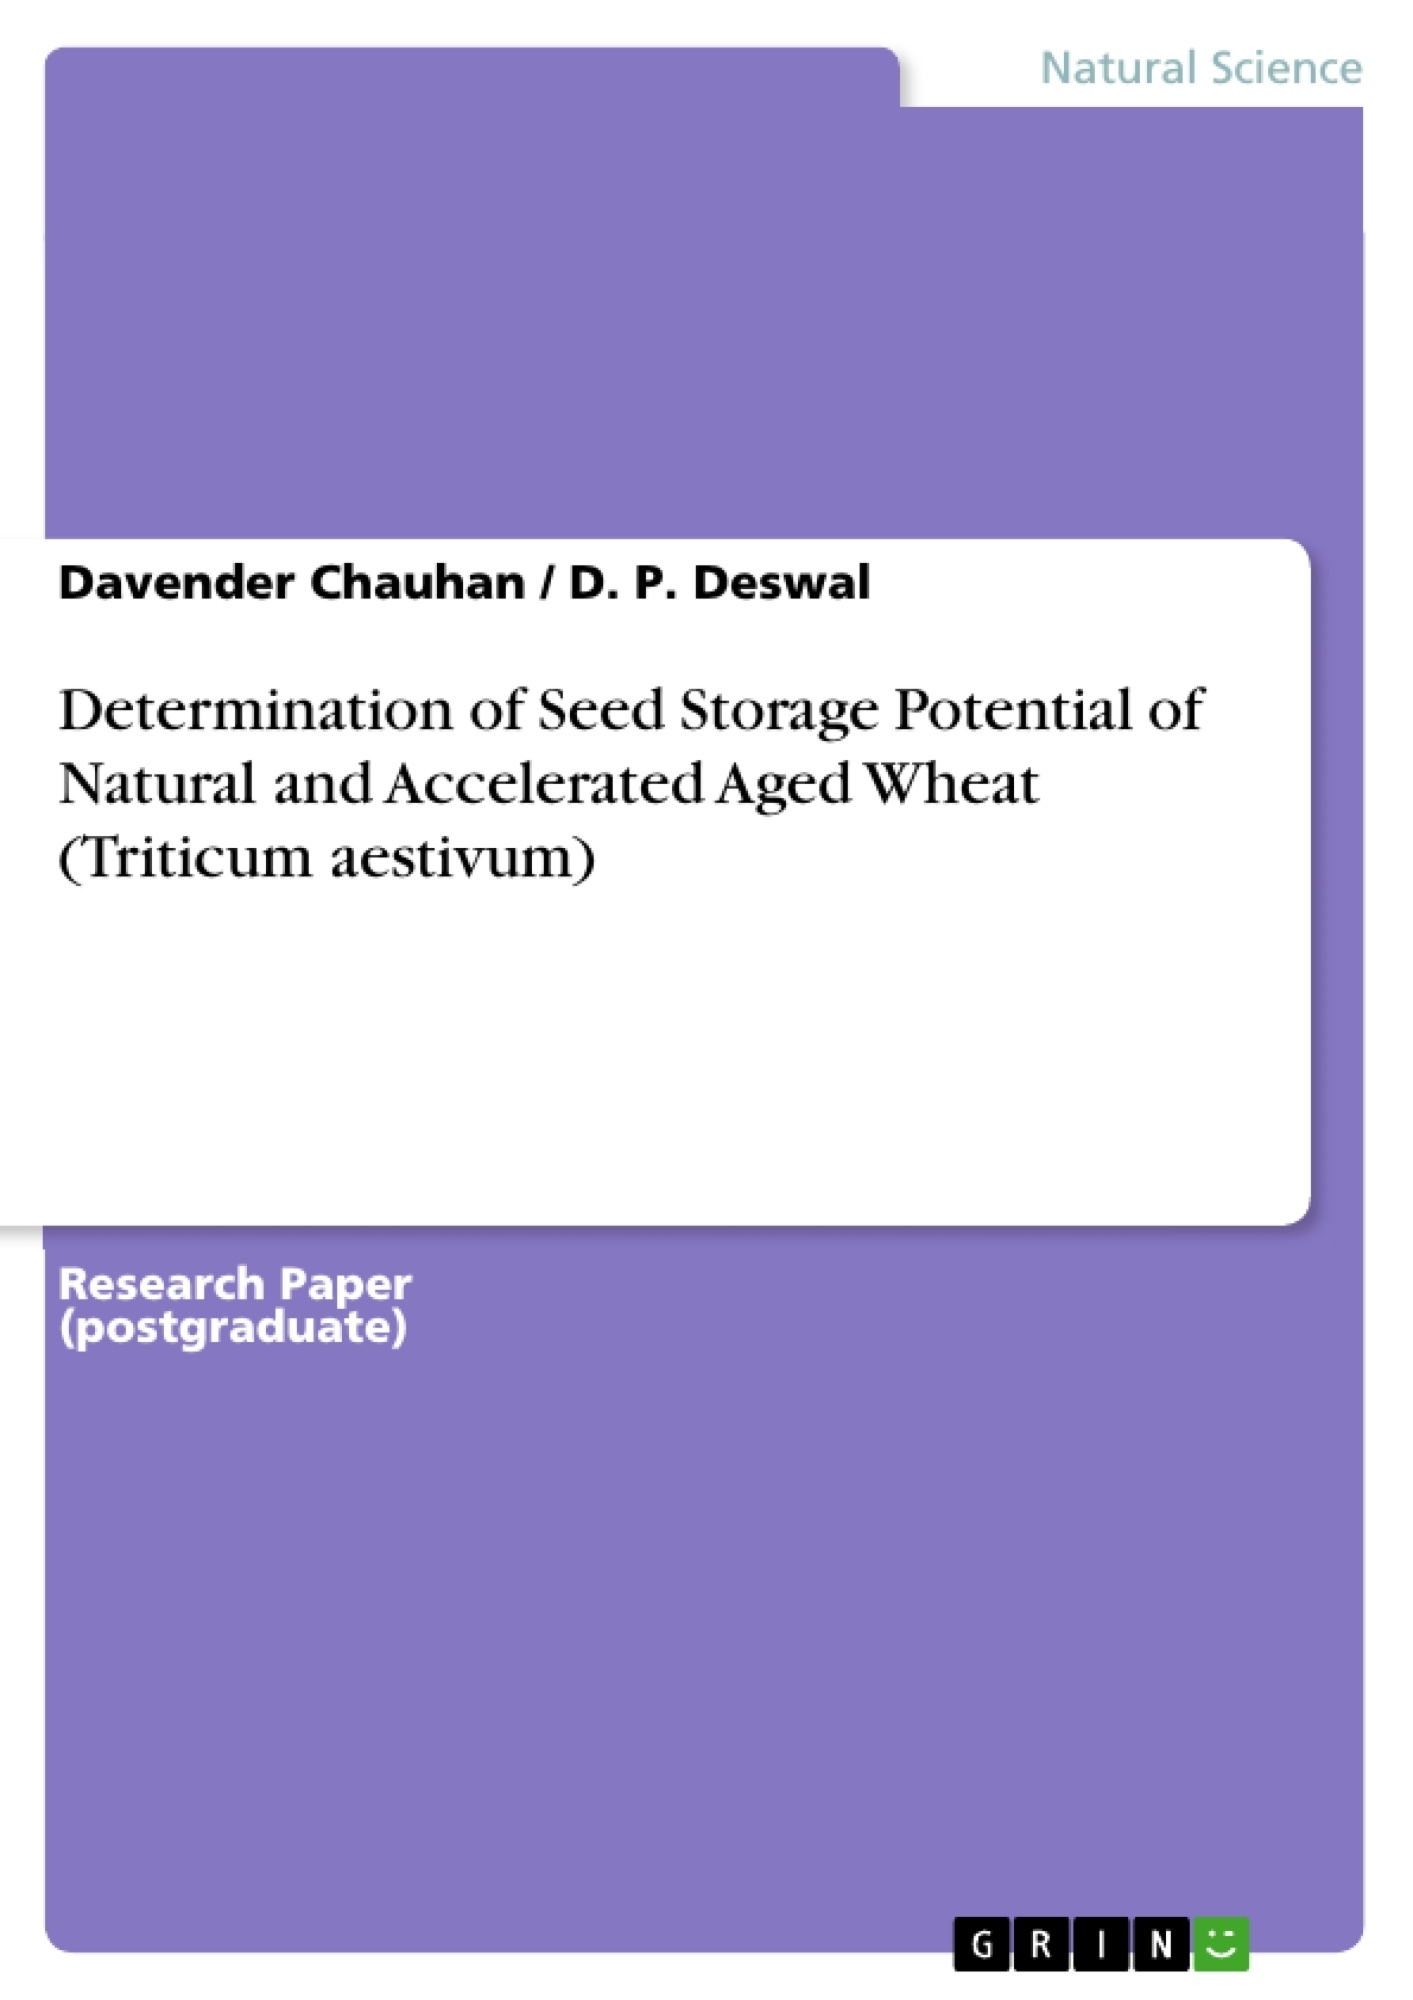 Title: Determination of Seed Storage Potential of Natural and Accelerated Aged Wheat (Triticum aestivum)